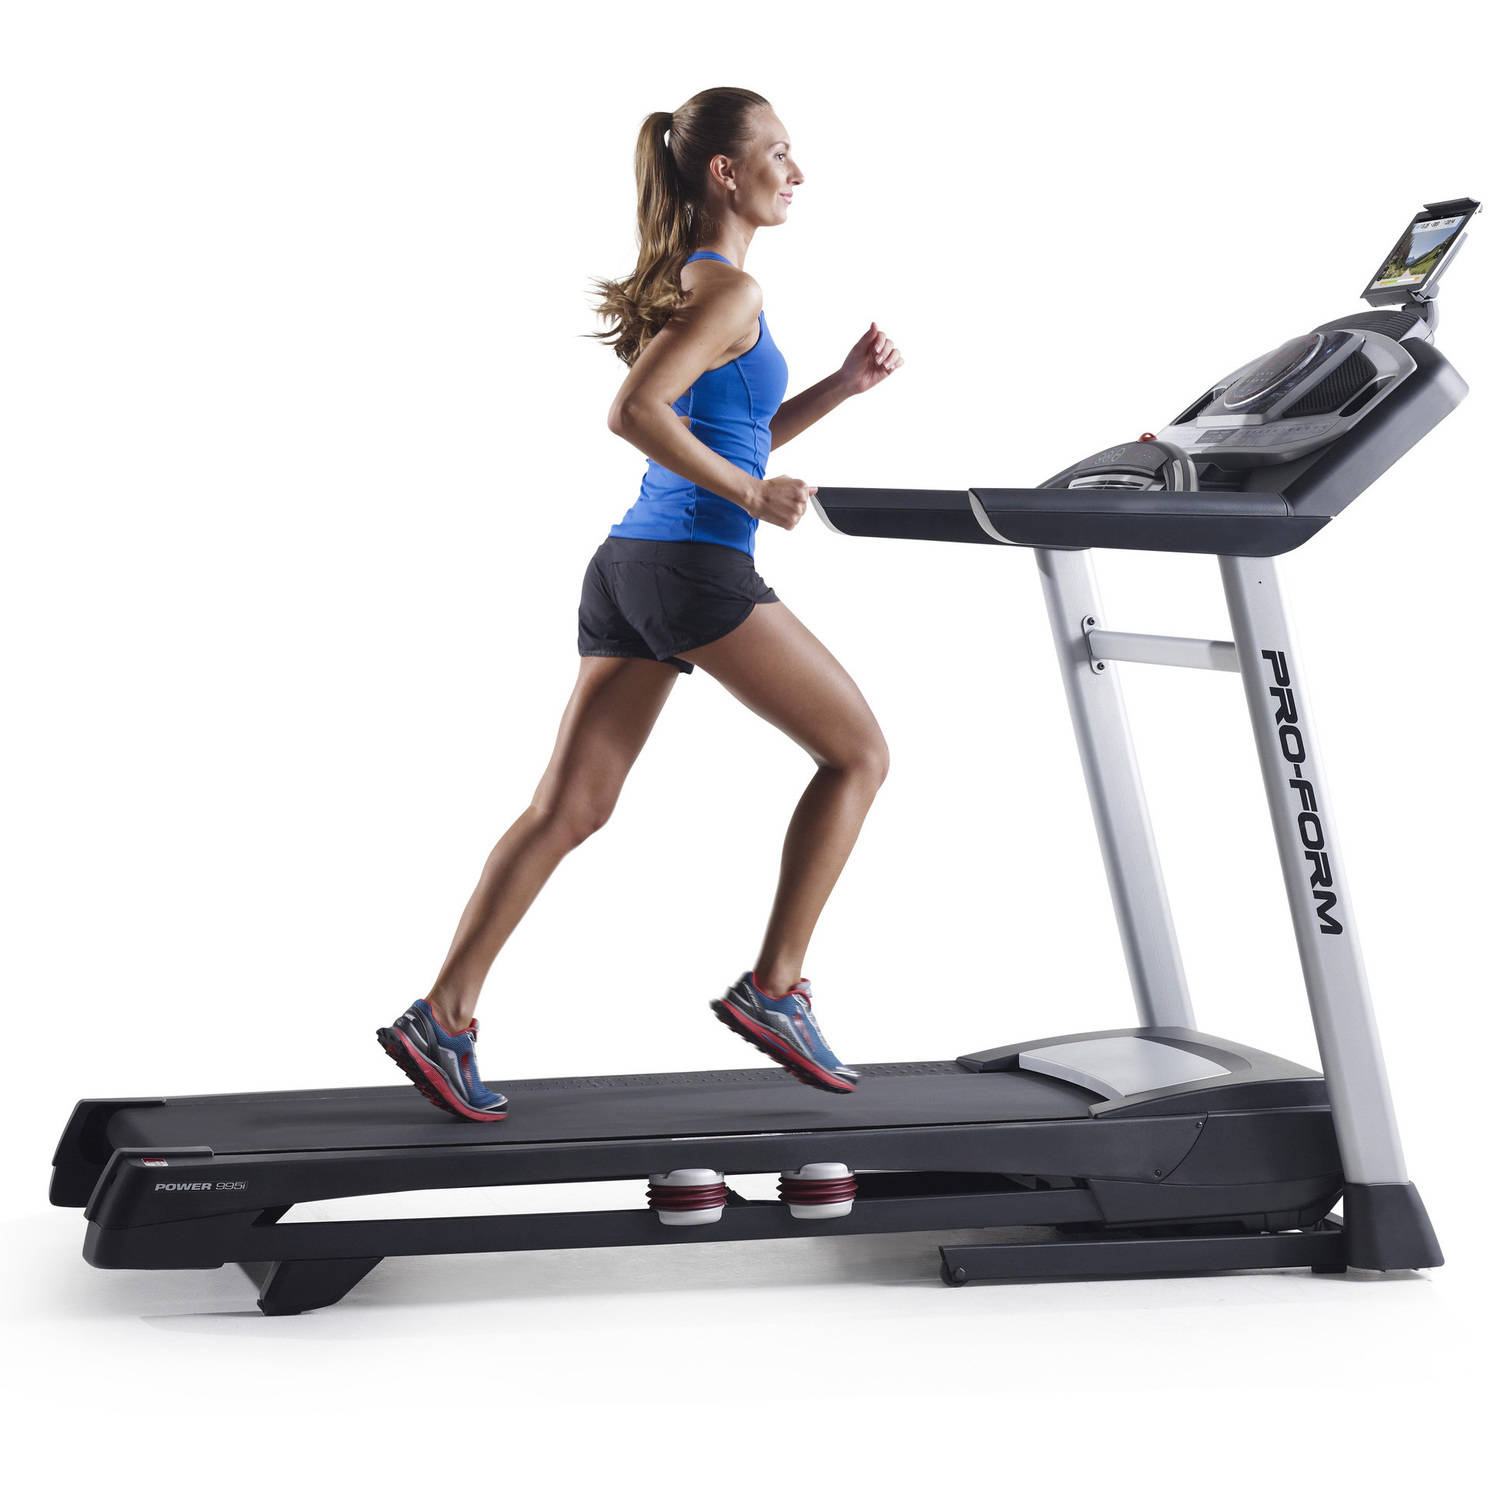 ProForm Performance 995i Treadmill, Powered by iFit